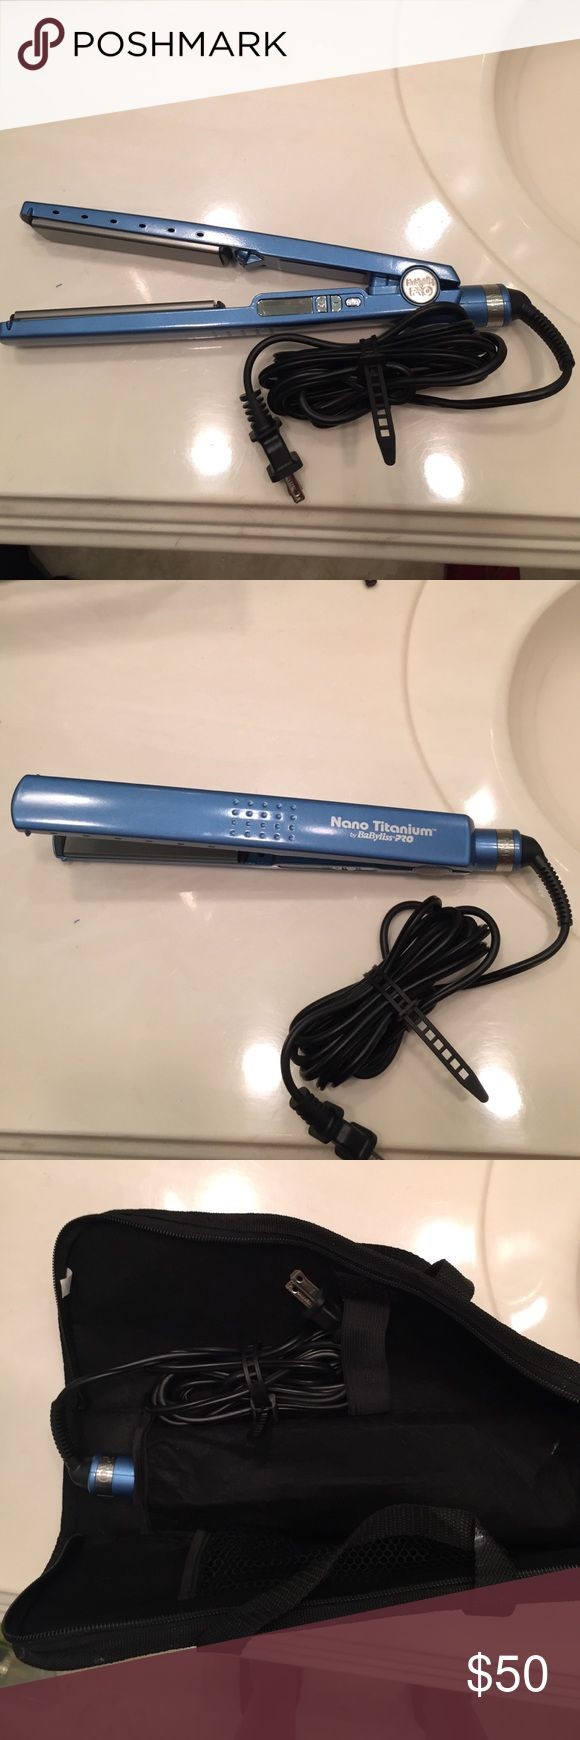 Babyliss Nano Titanium Straightener As the title says Babyliss Nano Titanium Straightener. Never used because I don't straighten my hair. Comes with a babyliss bag Babyliss Other